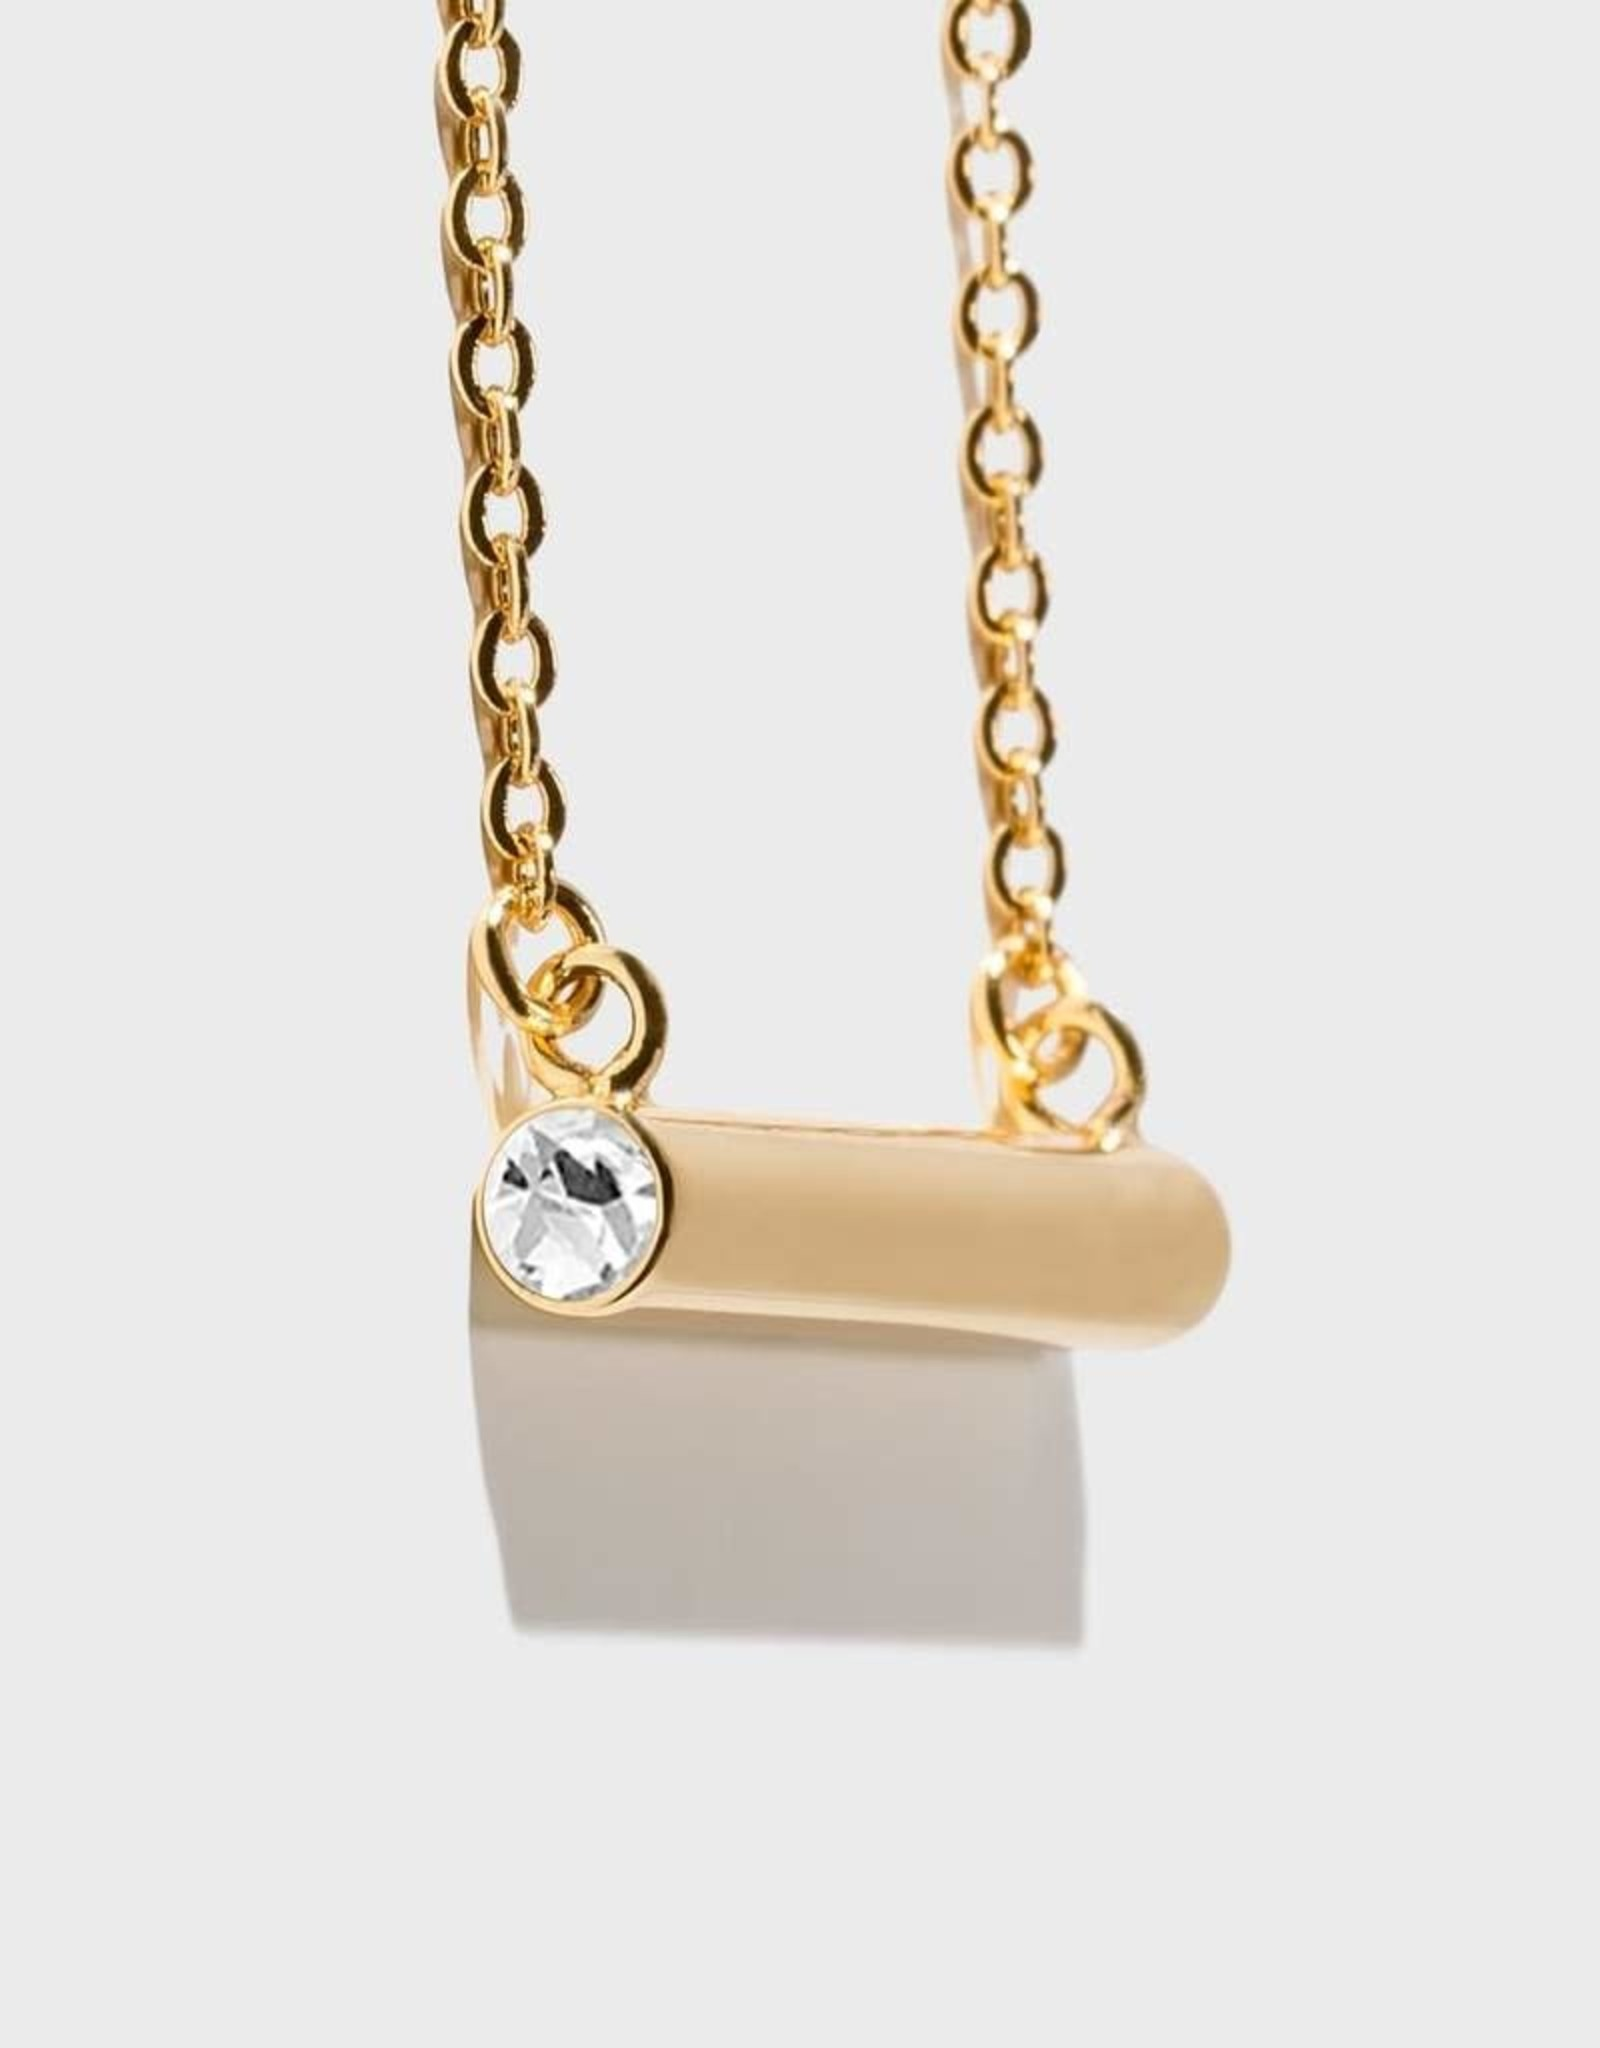 Stella Vale Birthstone Necklace - April/Gold